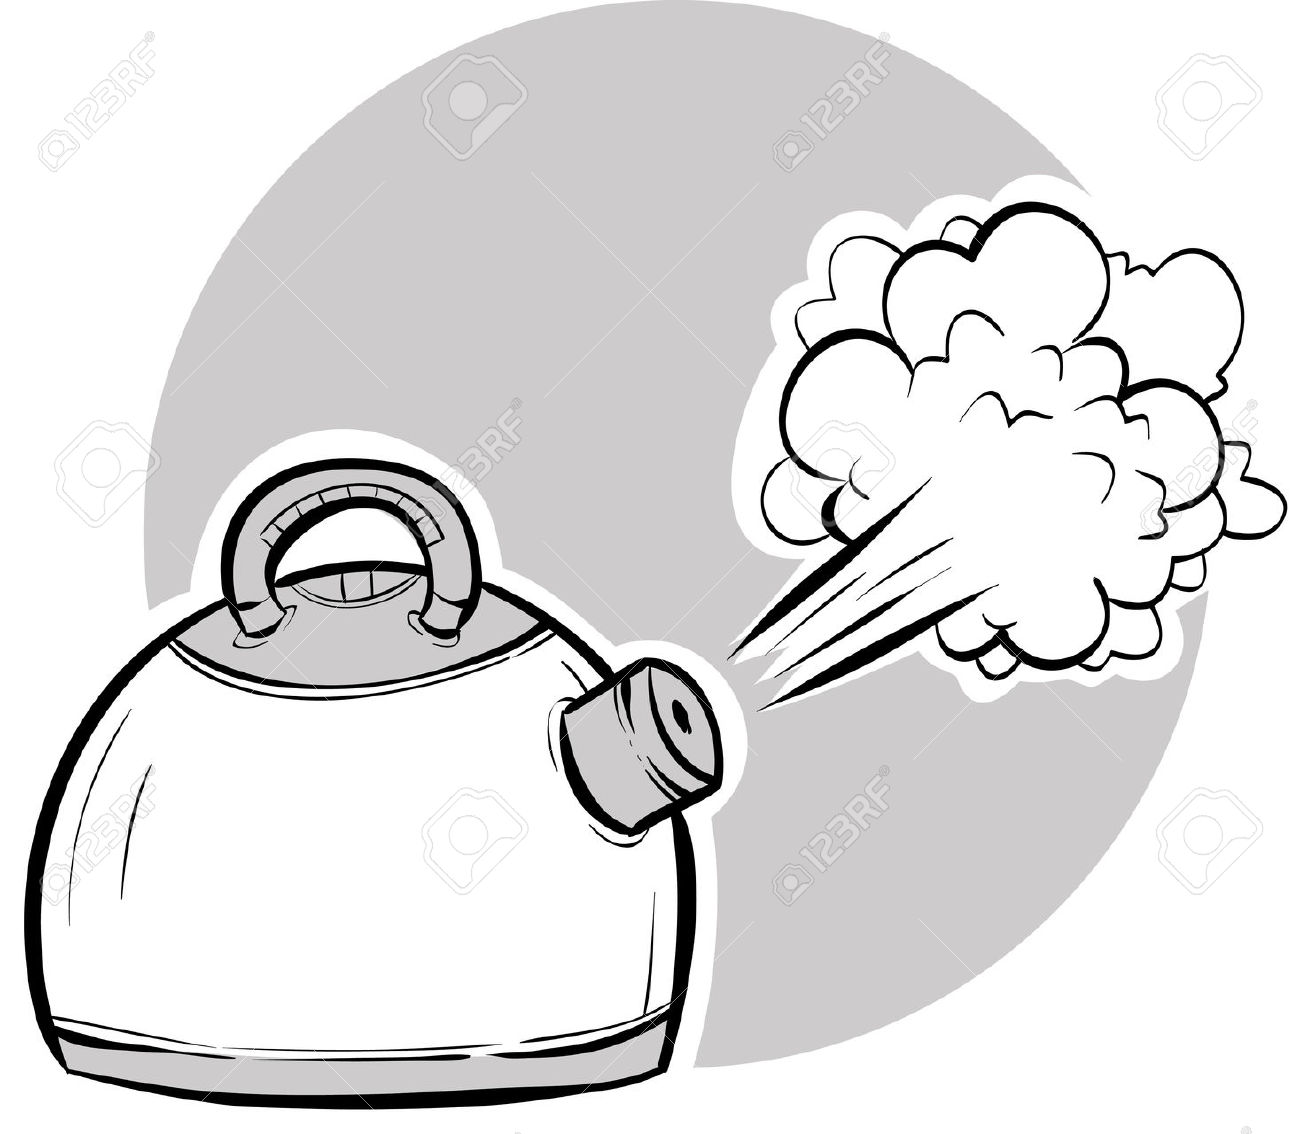 Boiling Water Steam Clipart.